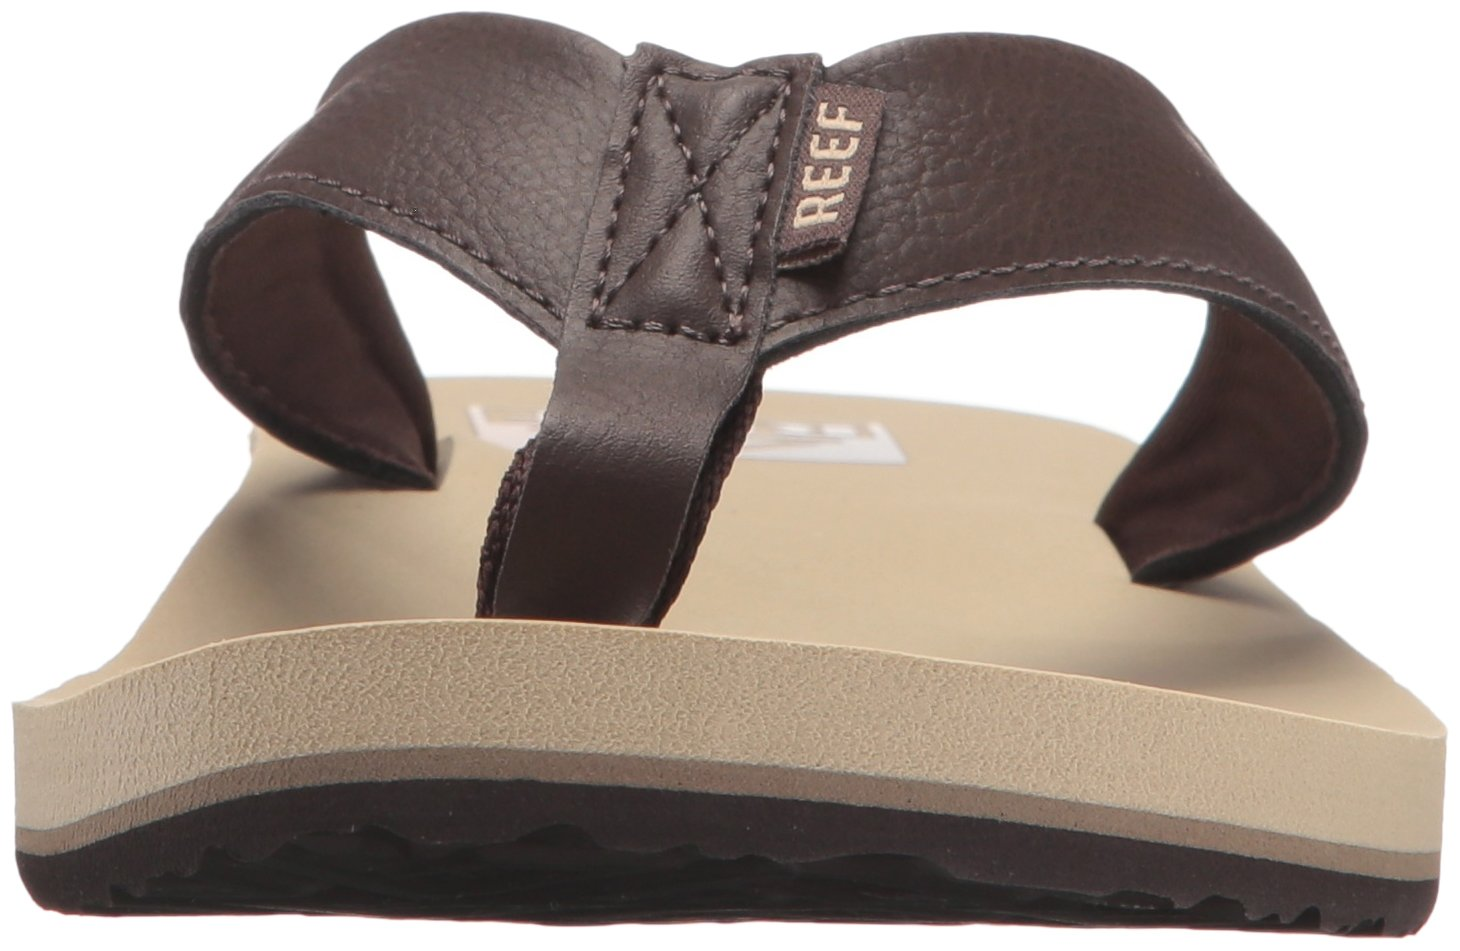 Reef Men's Sandal Twinpin | Comfortable Men's Flip Flop With Vegan Leather Upper, Grey, 7